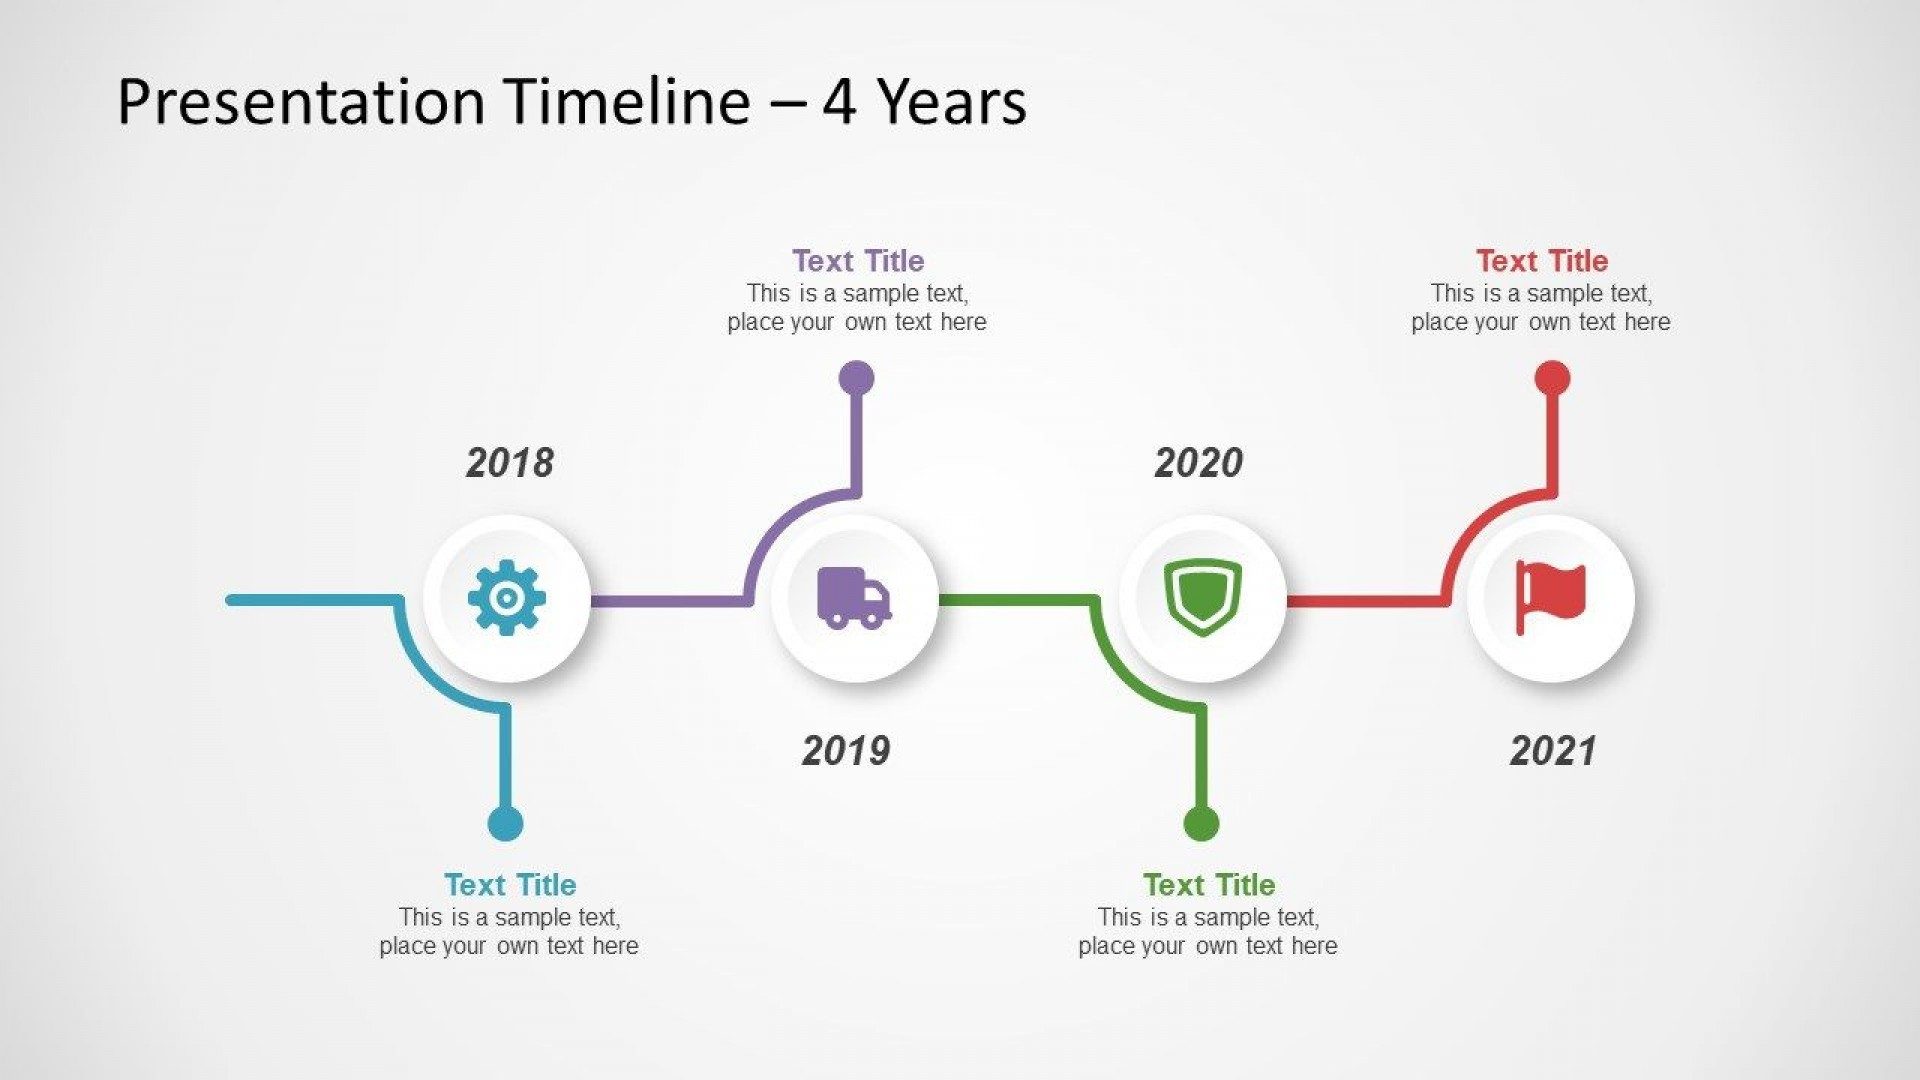 006 Remarkable Timeline Format For Ppt Sample  Template Pptx Free Sheet1920